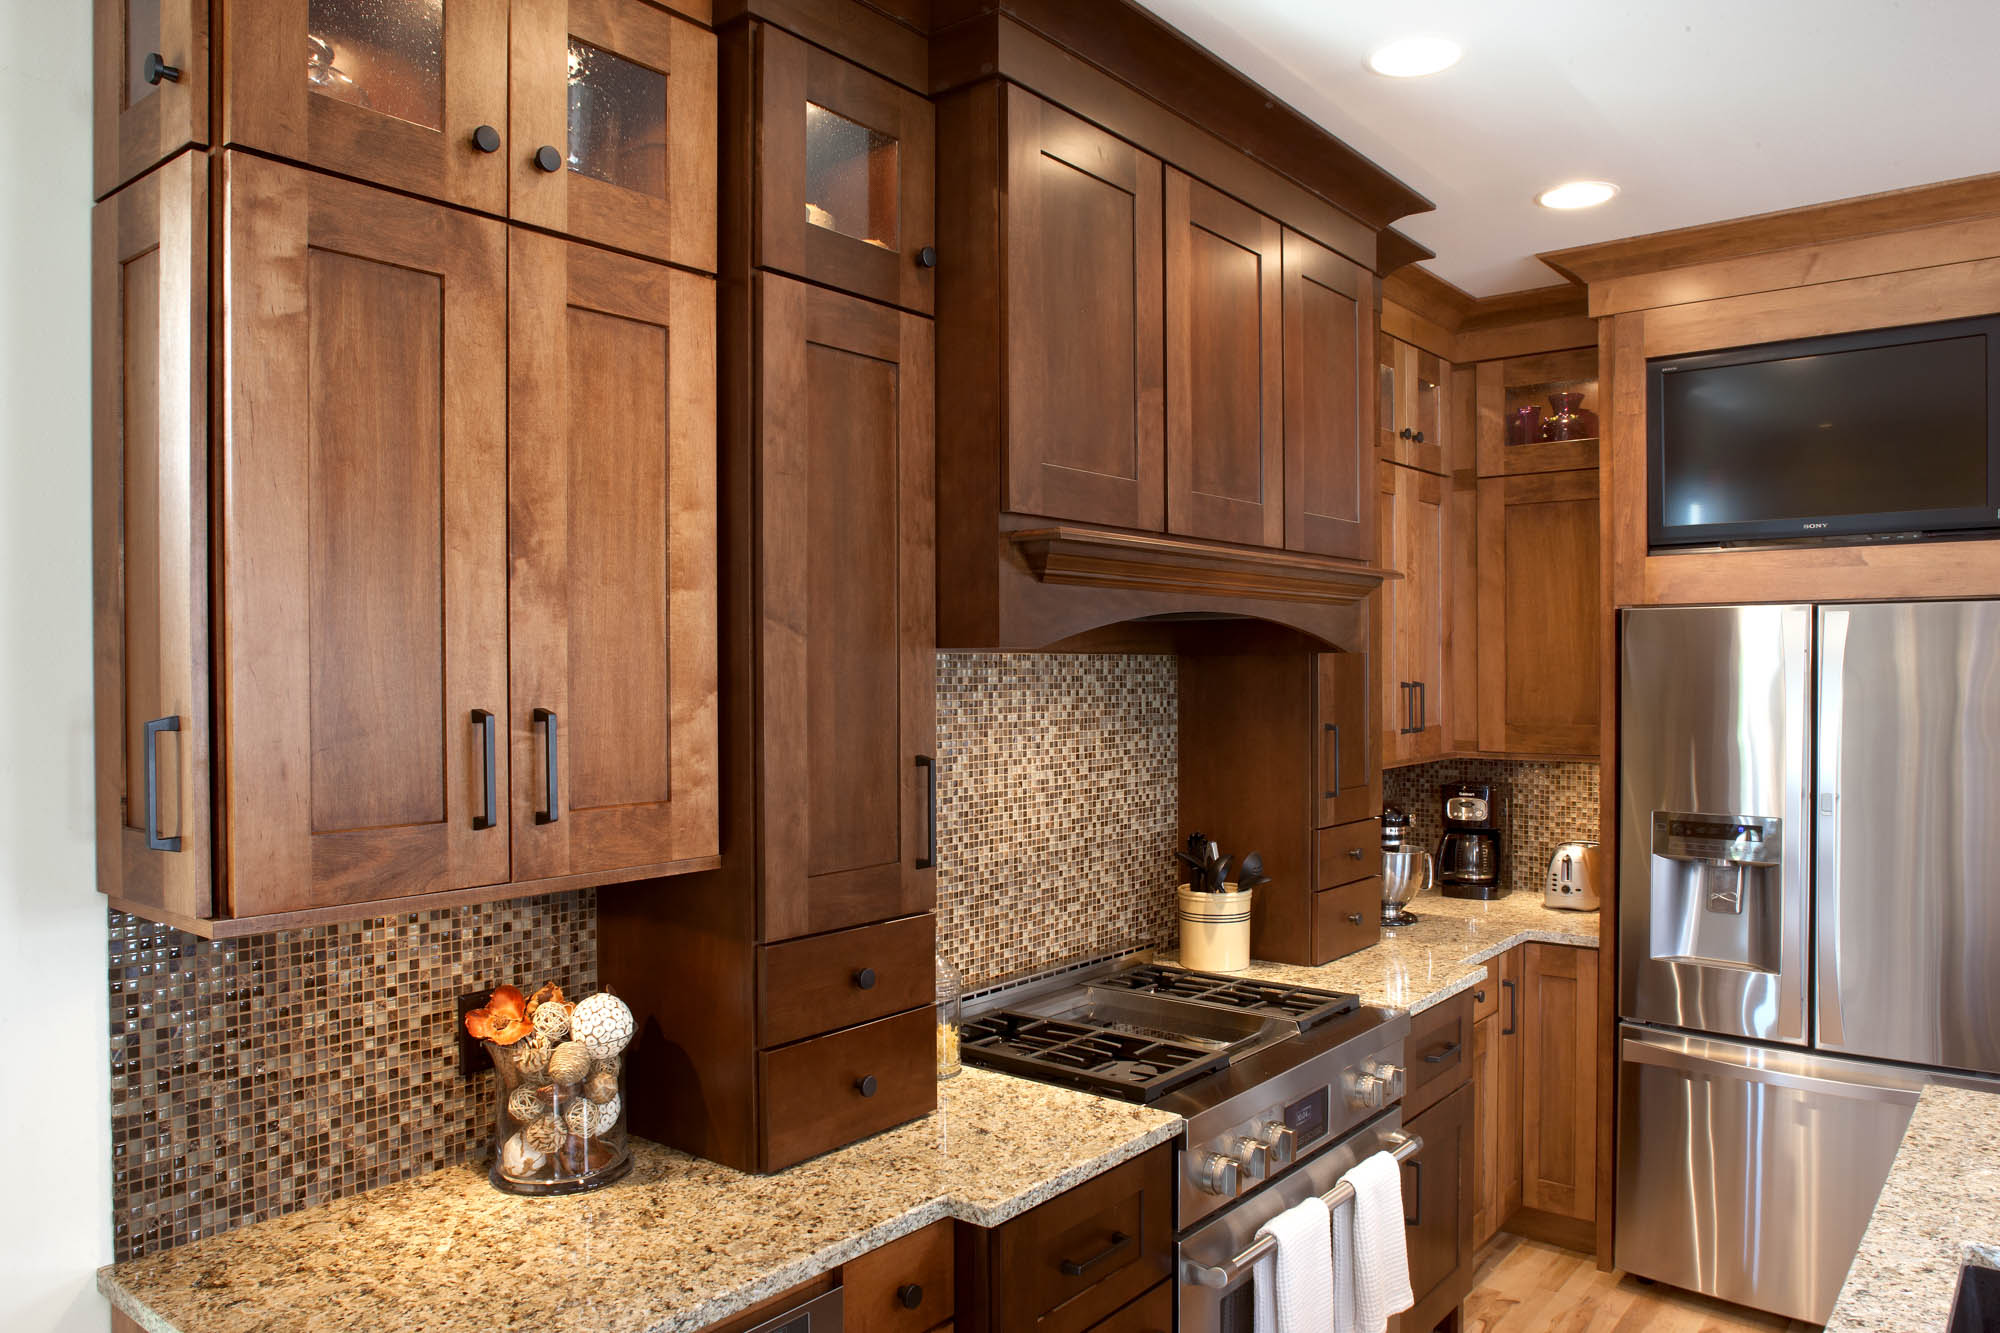 Lovely Stained Kitchen Cabinets In Harvest And Autumn By Showplace Cabinetry    View 4